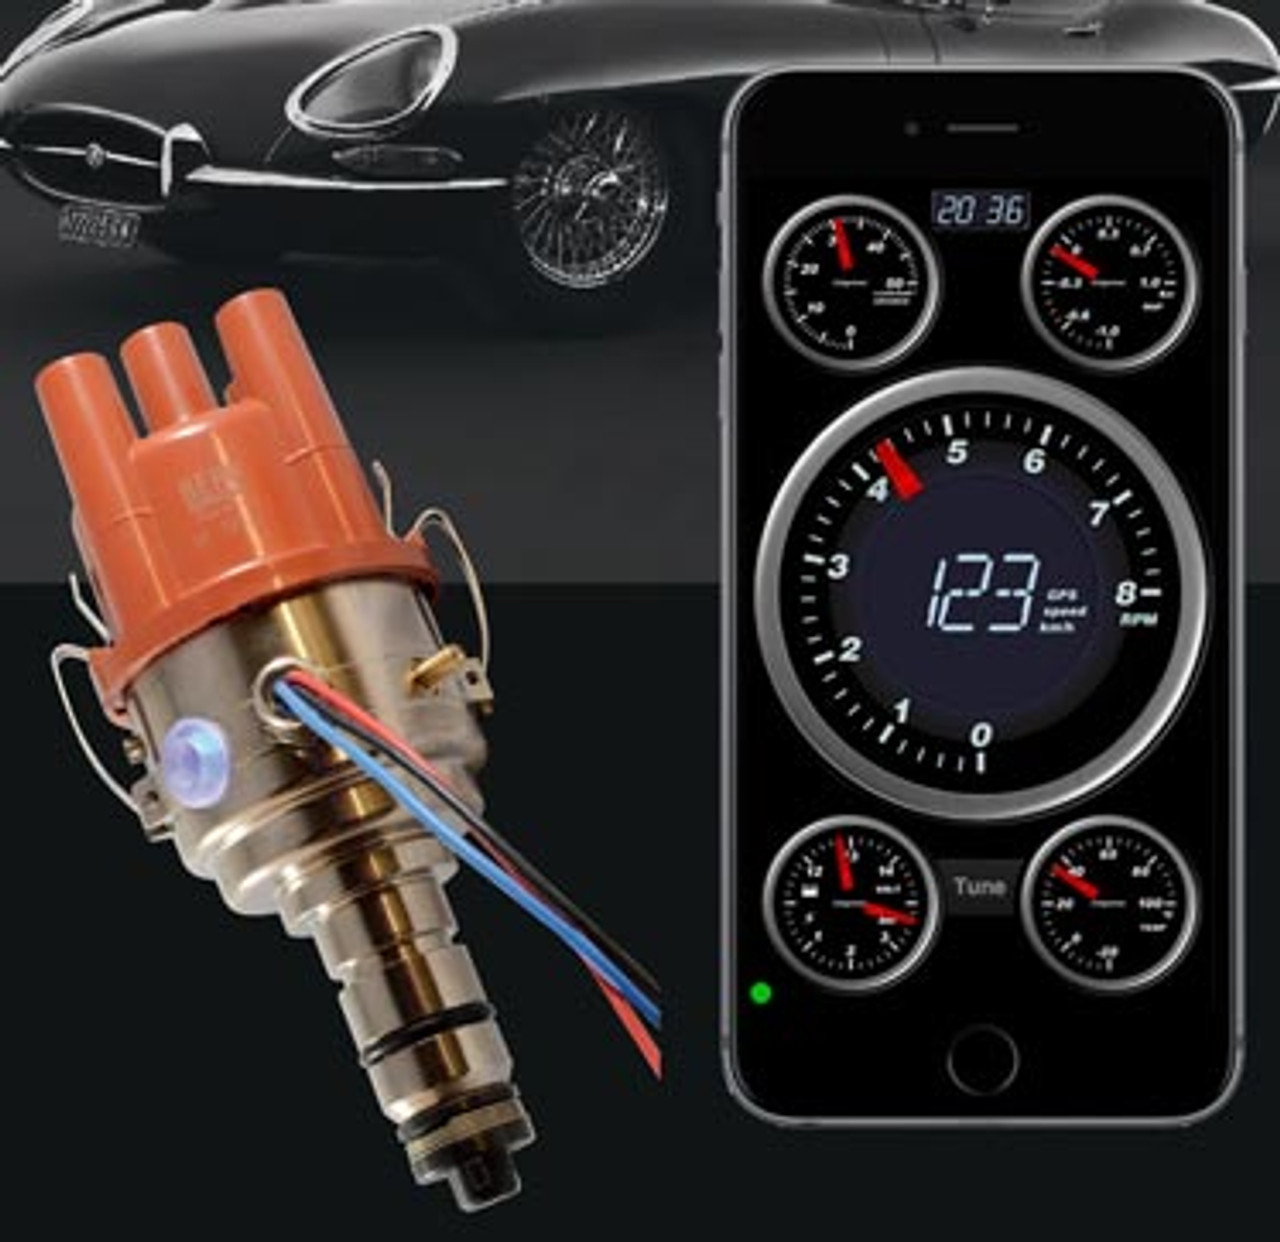 123\TUNE+-6-R-V-M (for Mercedes-Benz) The wireless programmable 123\TUNE+-6-R-V-M is designed for the most classic 6 cylinder Mercedes engines.  For engines with Bosch D-jetronic fuel injection, order the non programmable 123\MERCEDES-6-R-V-IE.